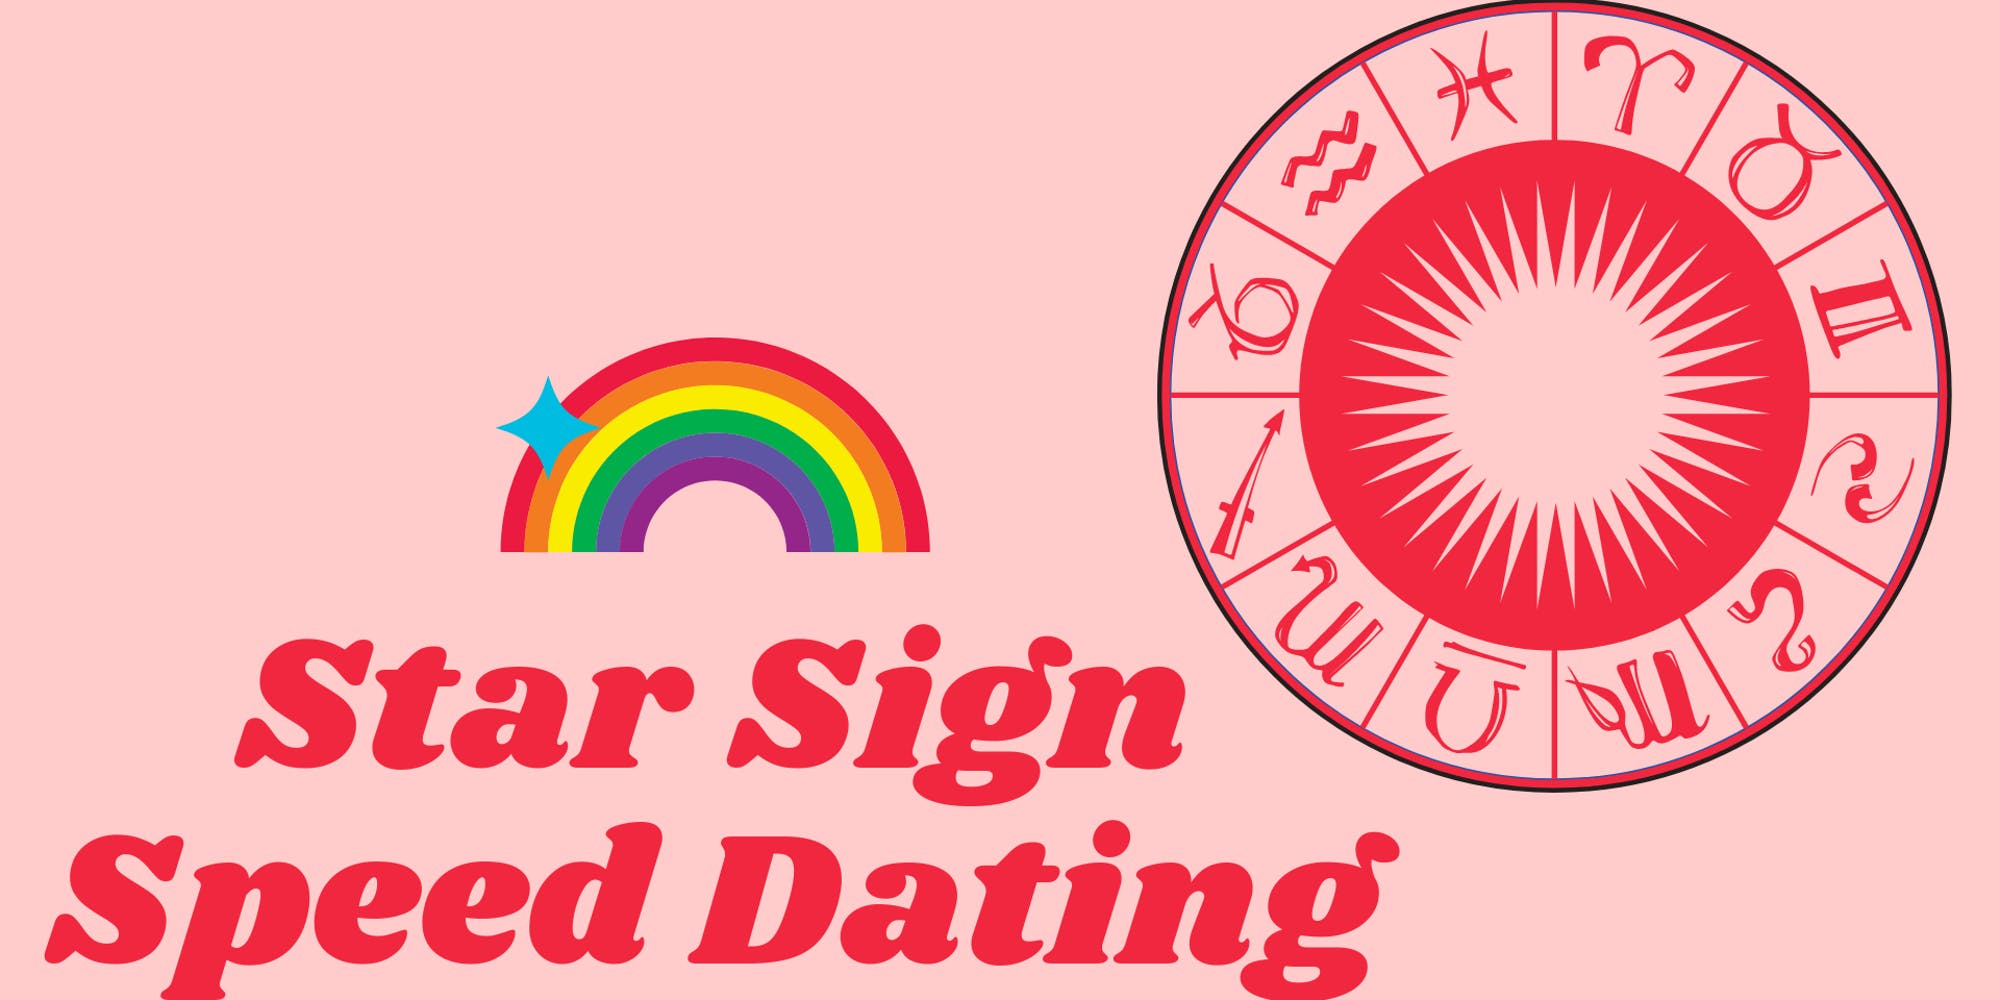 Star Sign Speed Dating